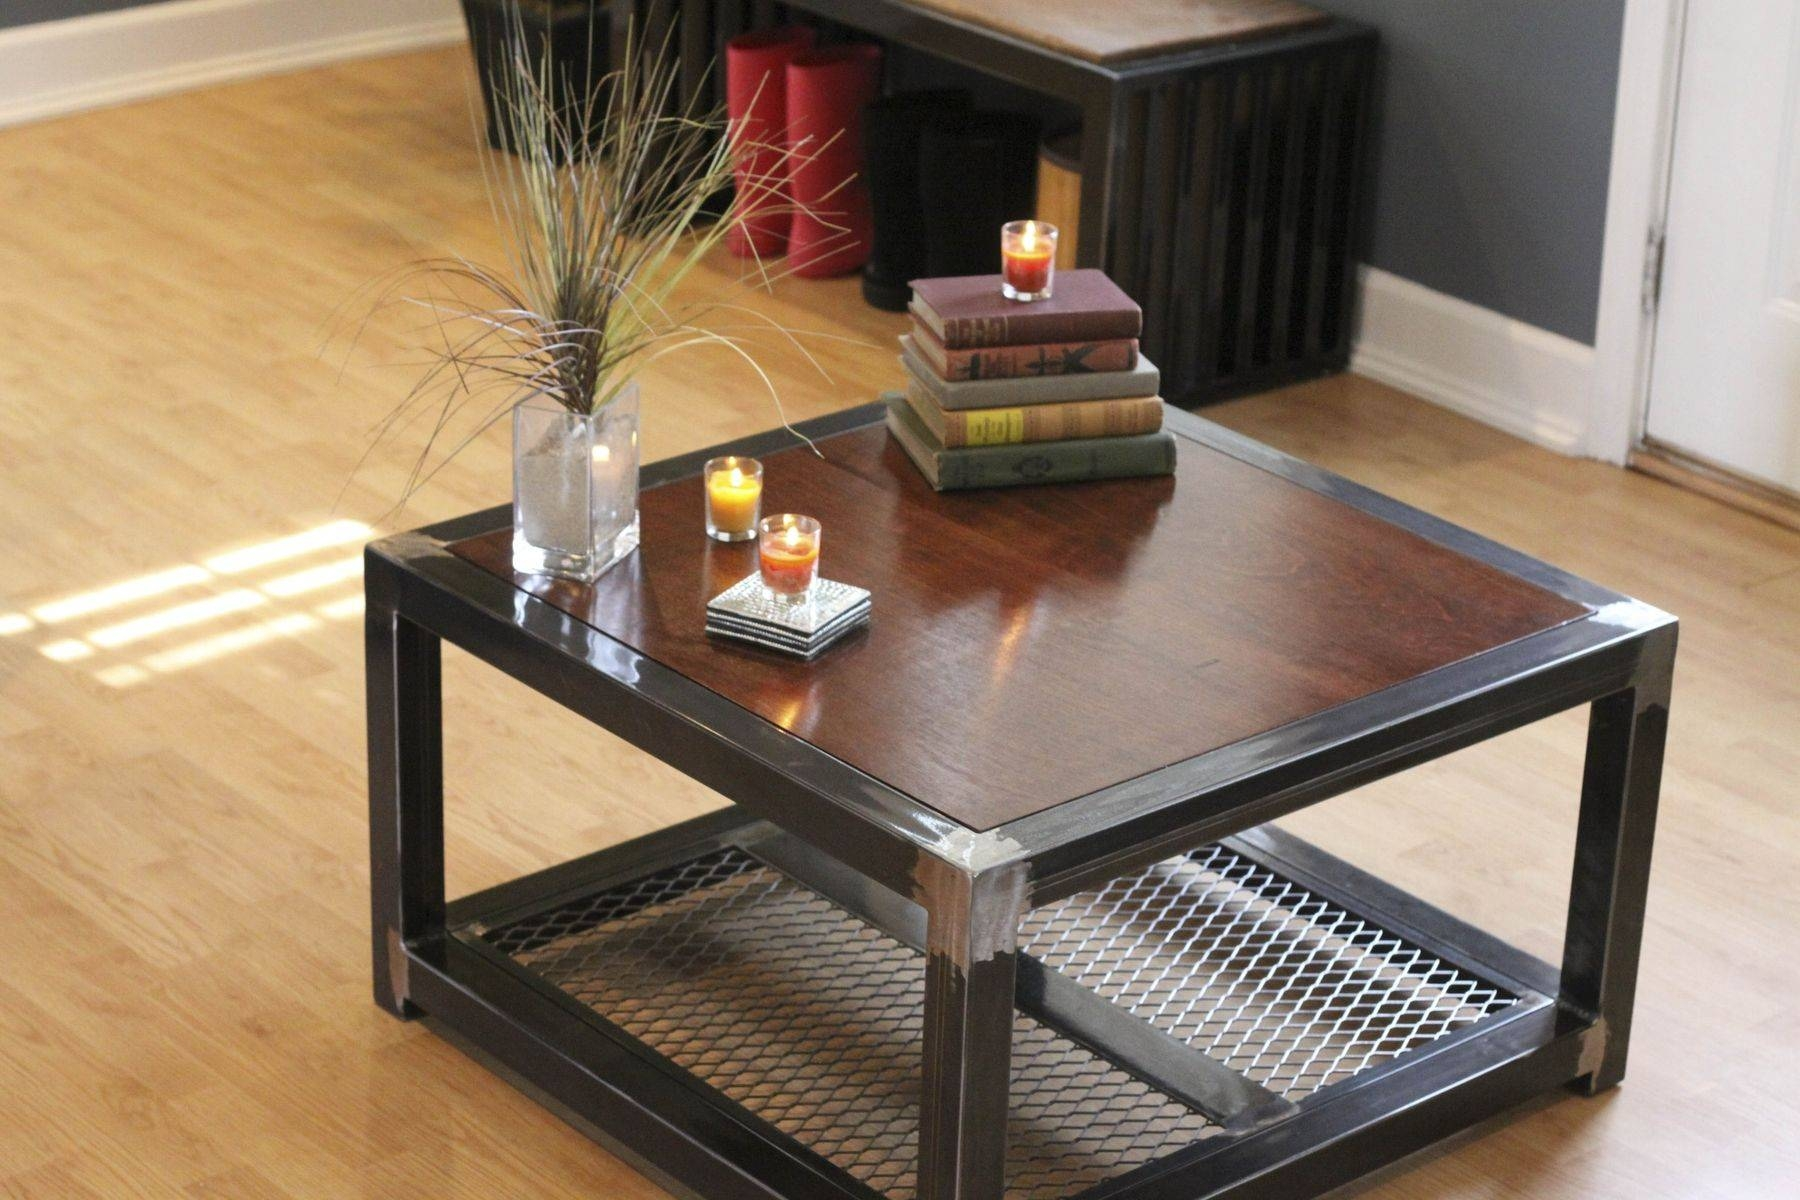 Hand Made Steel And Wood Coffee Tableindustrial Interiors with regard to Wood And Steel Coffee Table (Image 8 of 15)